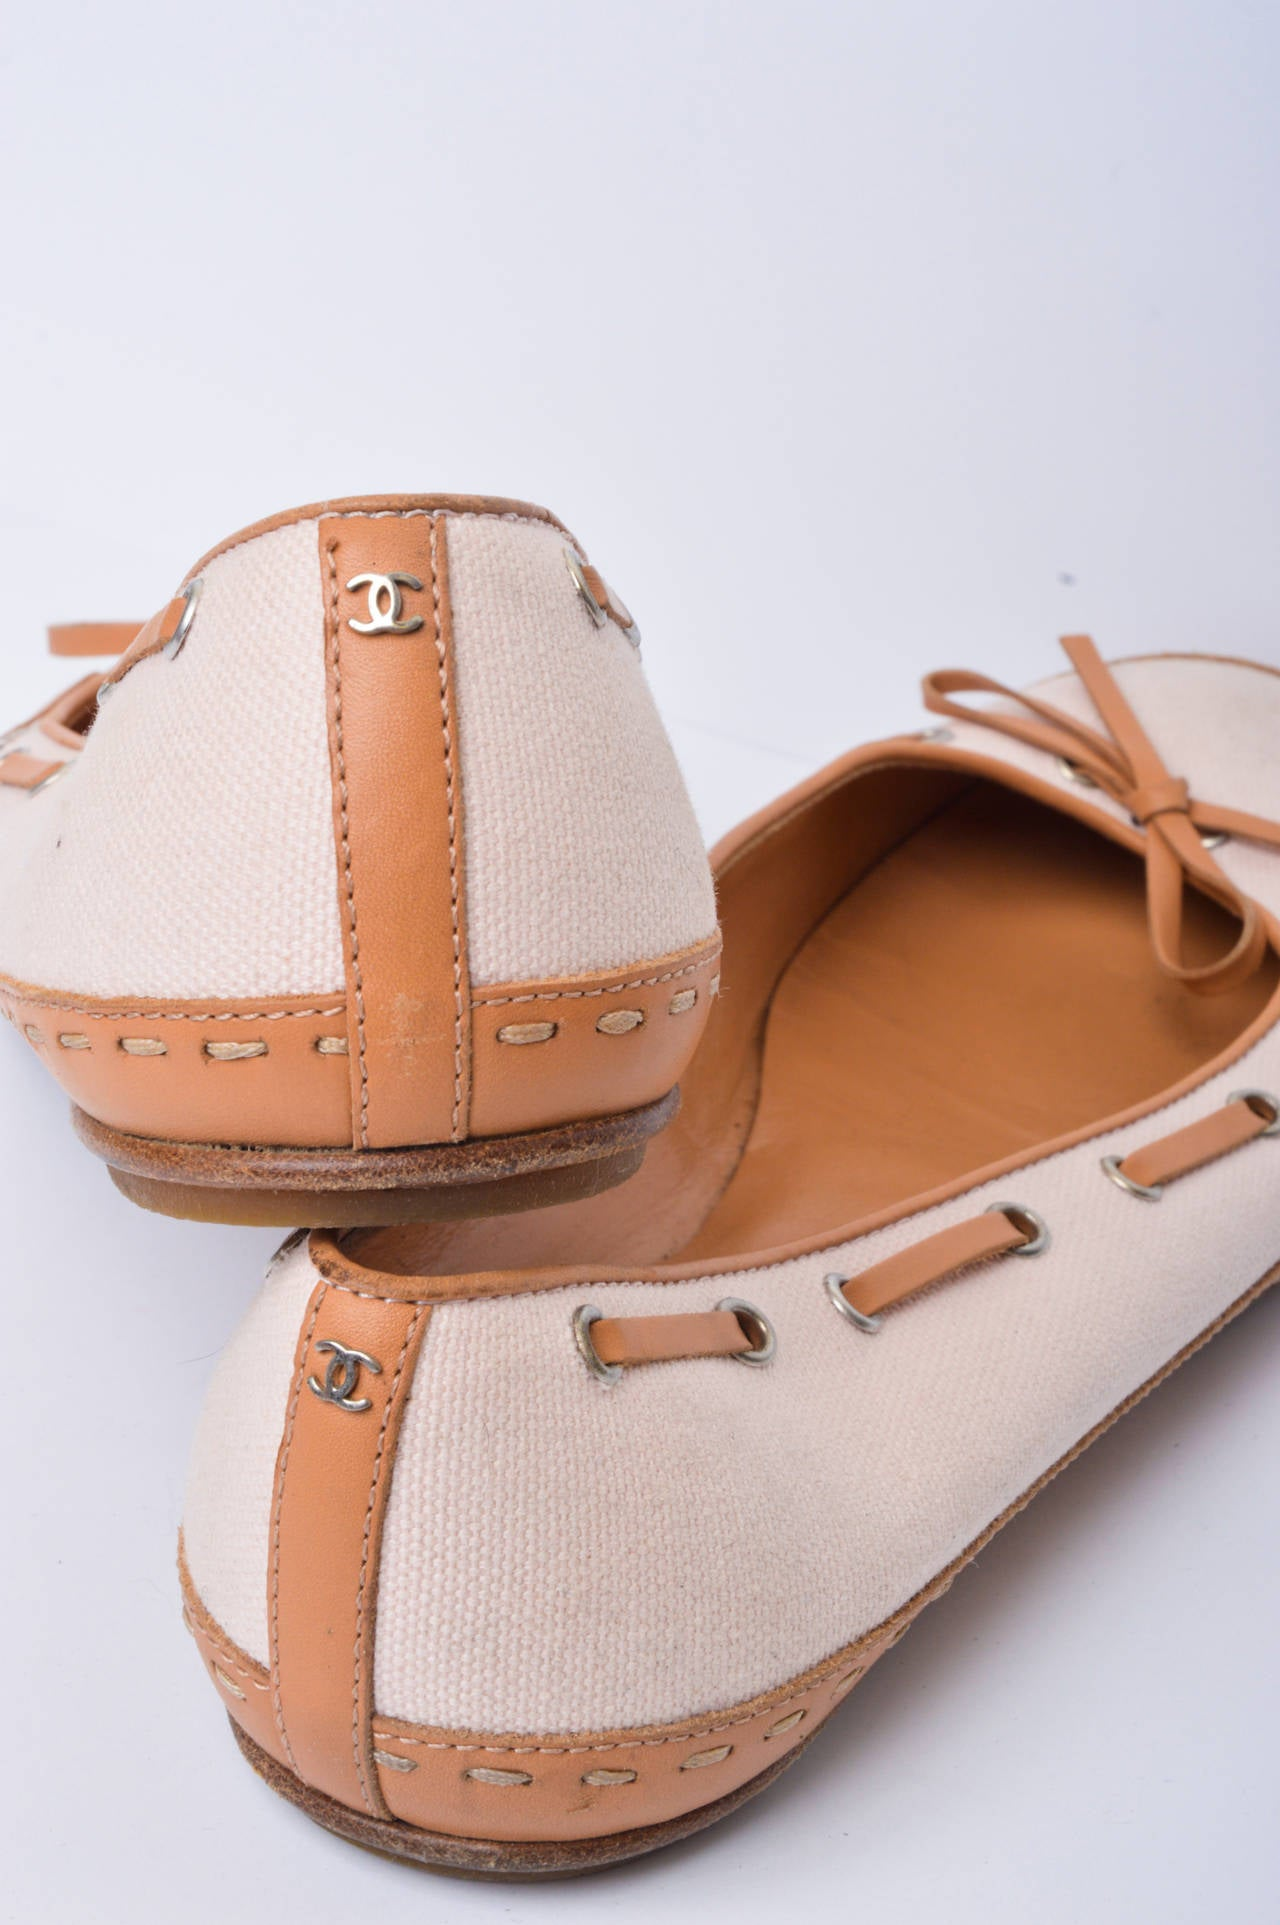 Chanel Pink & Tan Canvas & Leather Ballet Flats Size 37 3